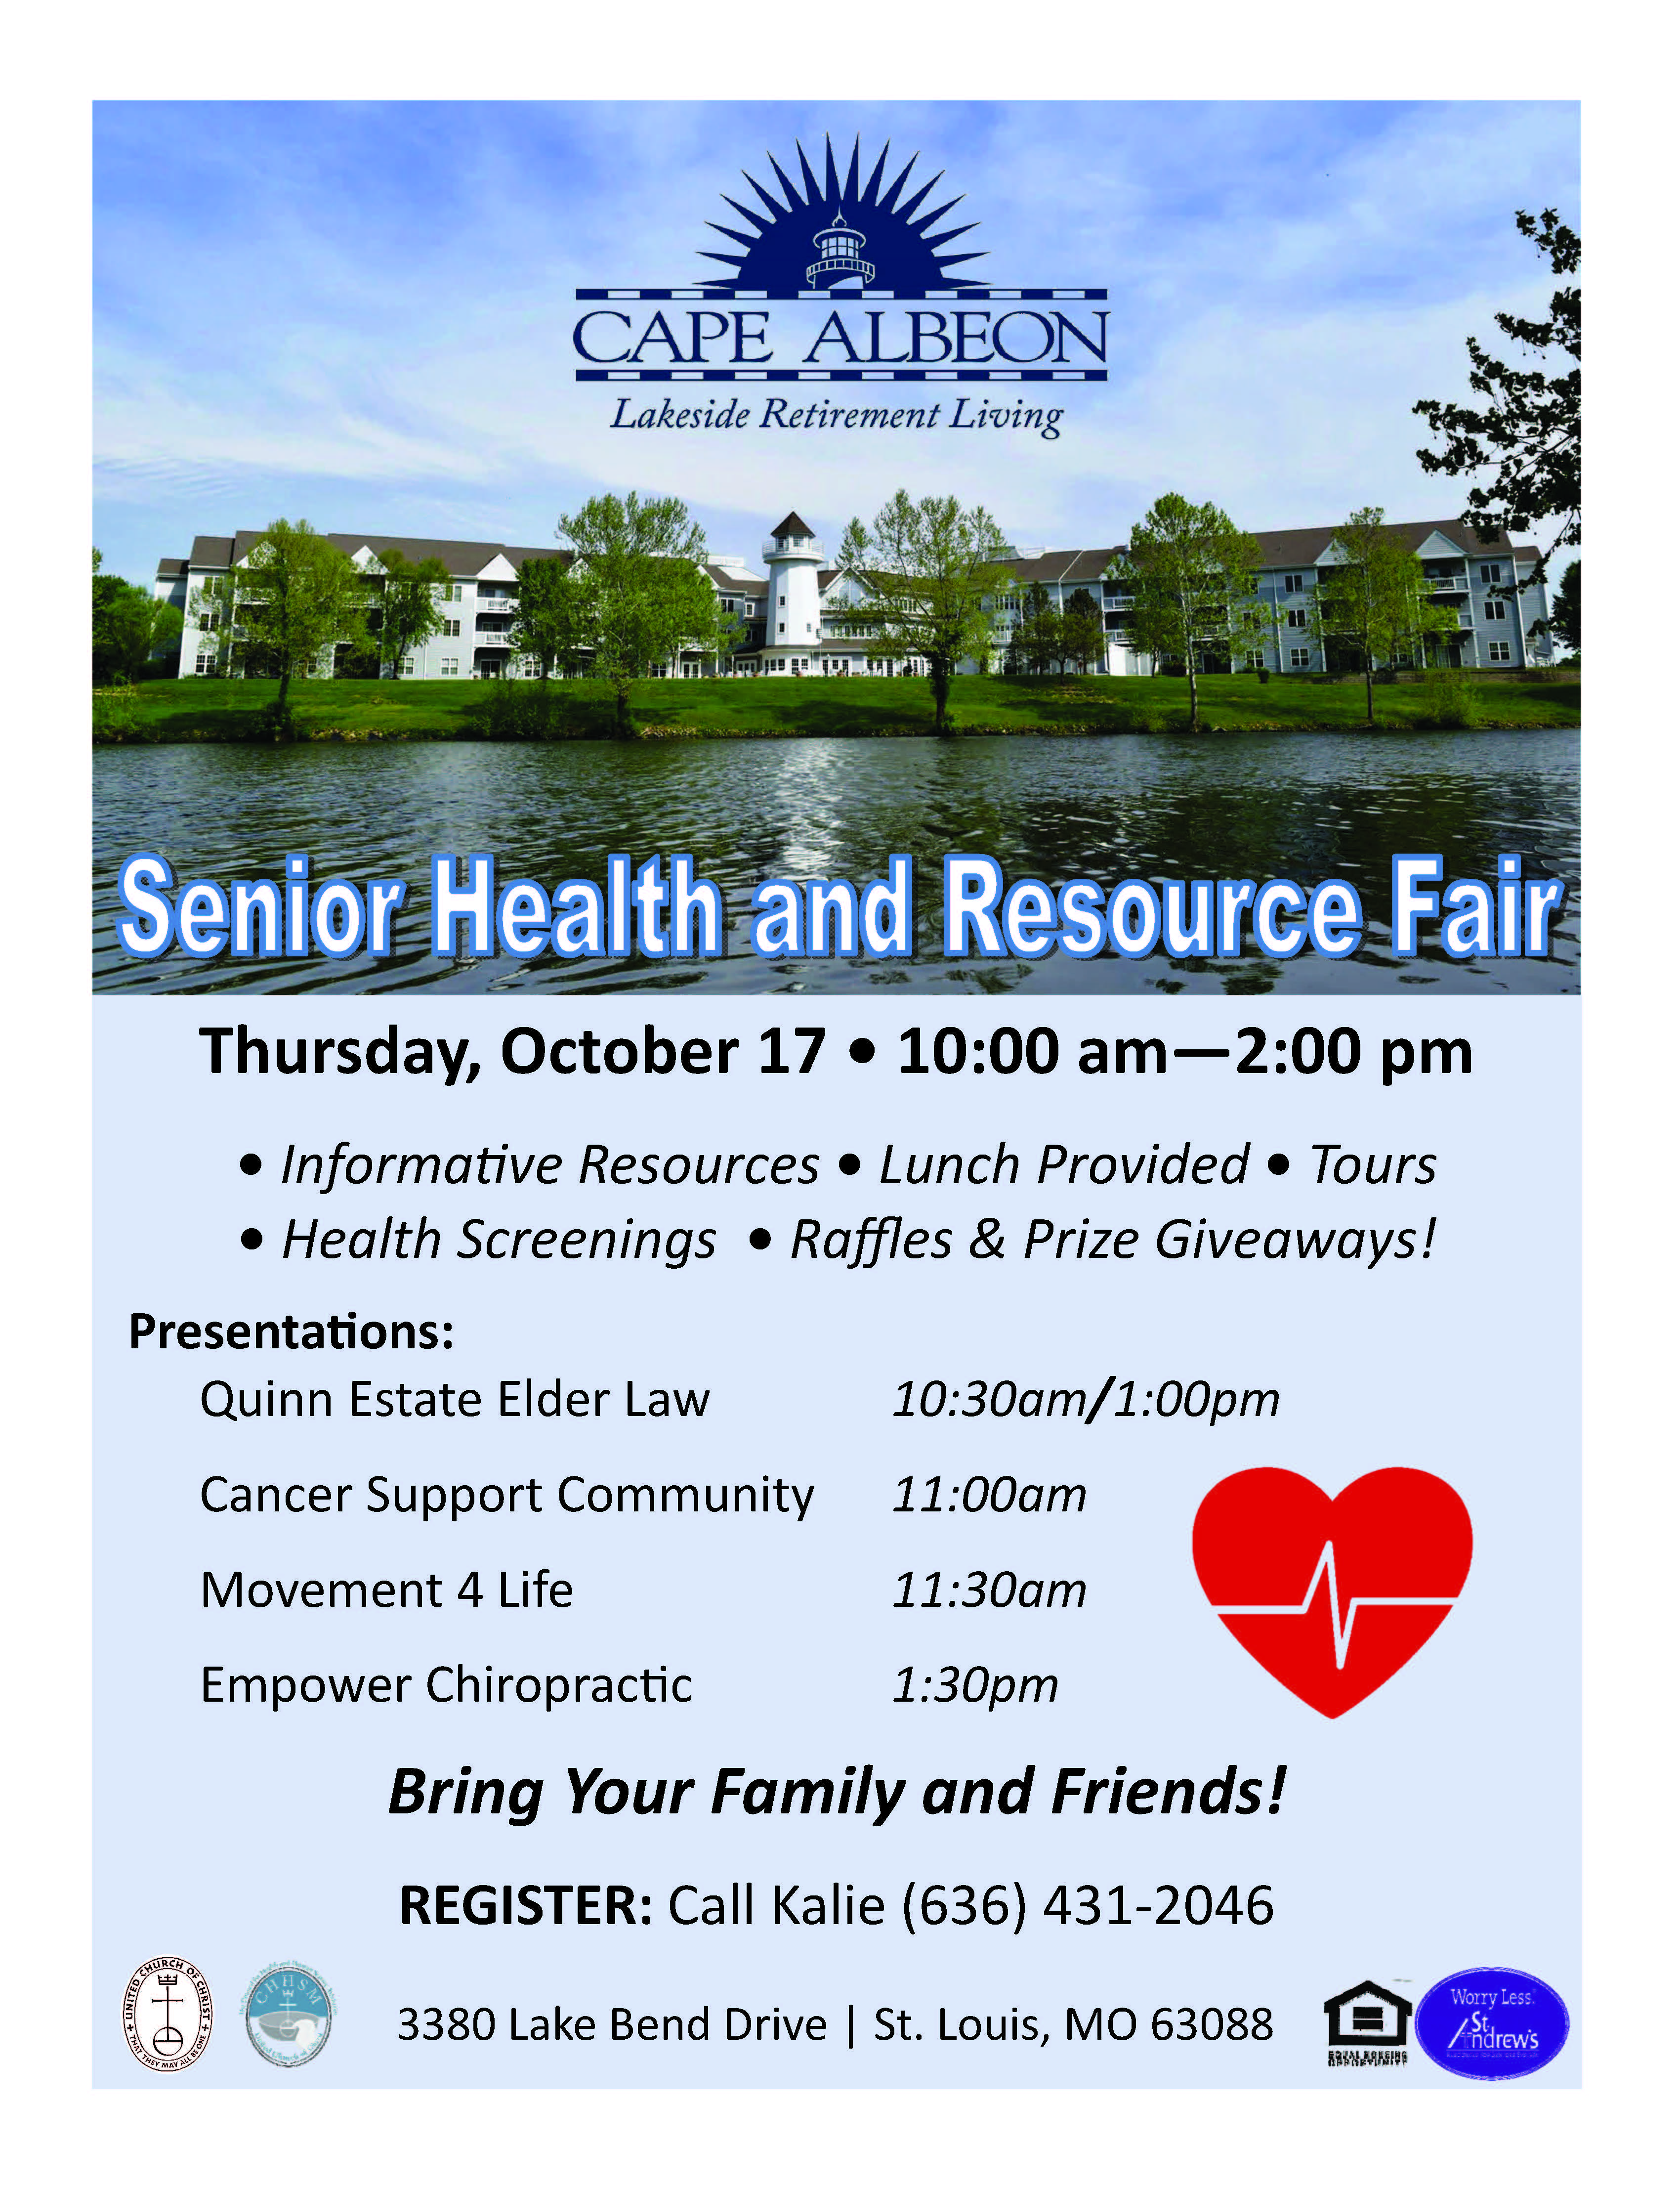 Cape Albeon hosts Senior Resource Fair 2019  St. Louis